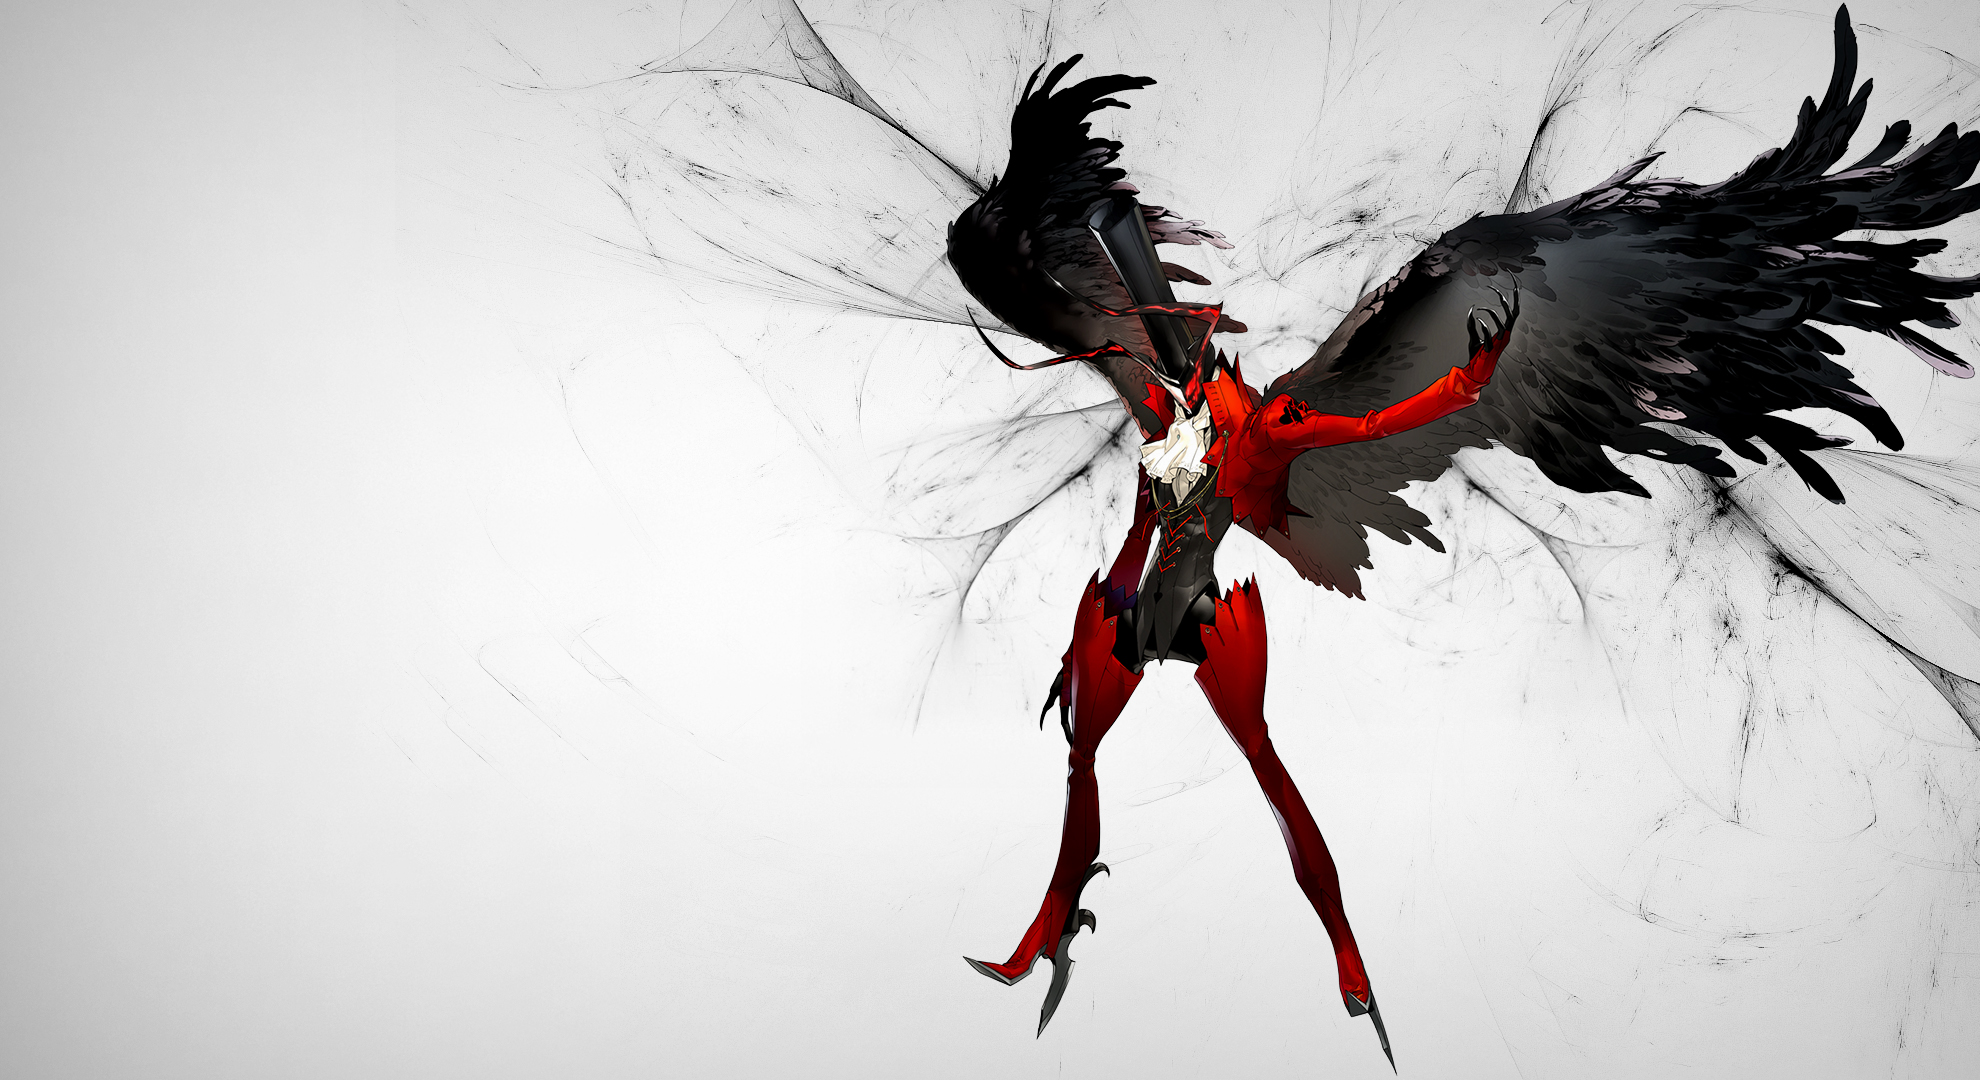 206 Persona 5 Hd Wallpapers Background Images Wallpaper Abyss